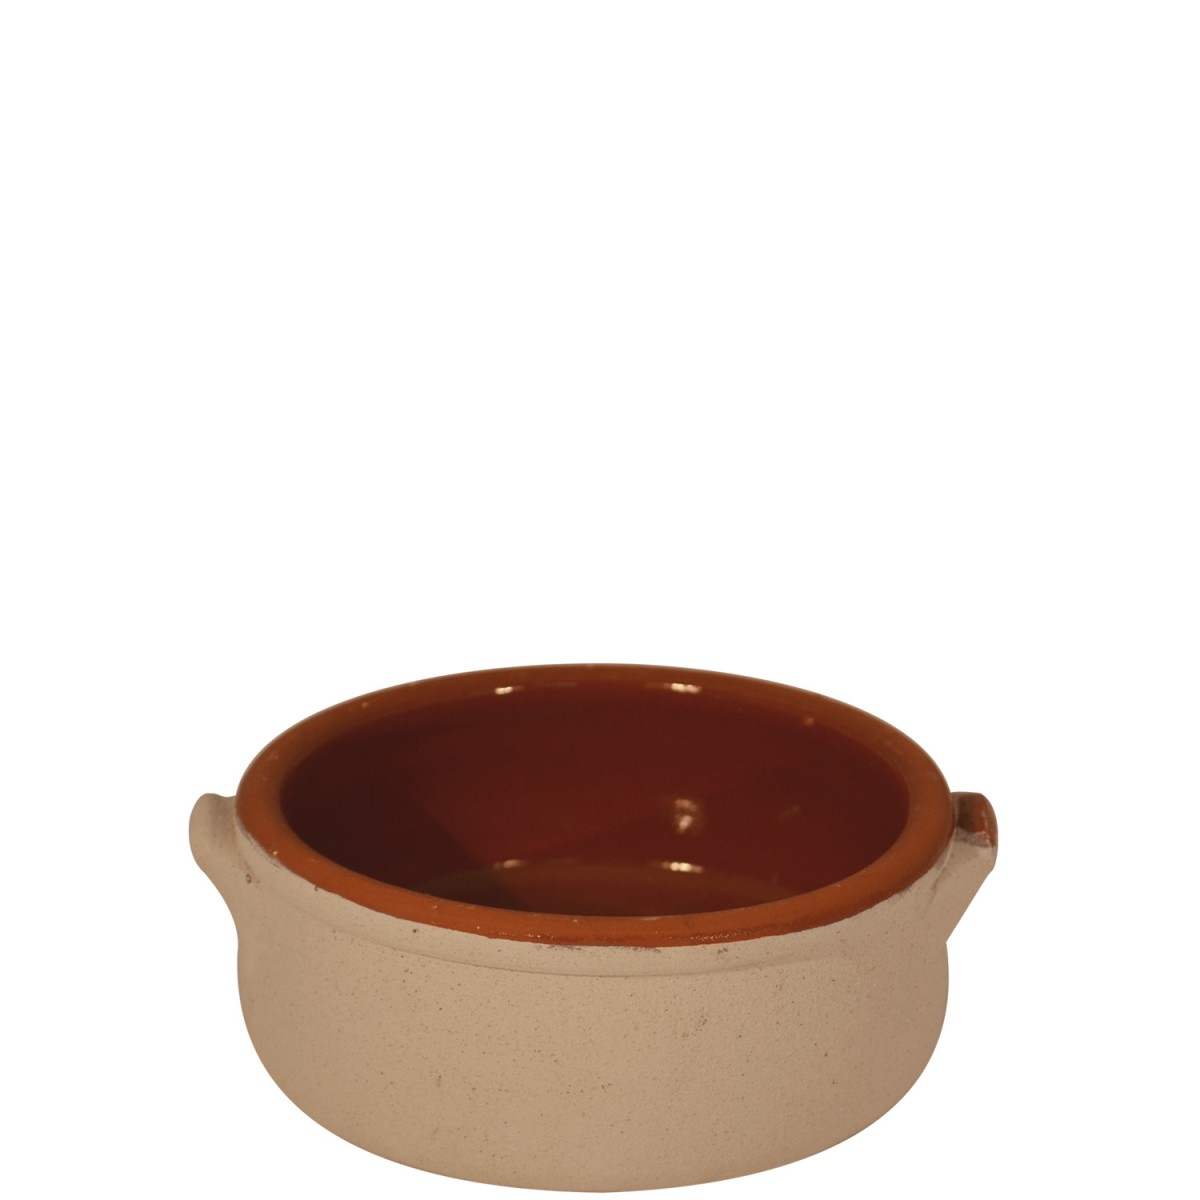 Sand Coated Atomic Claypot, Oven Use